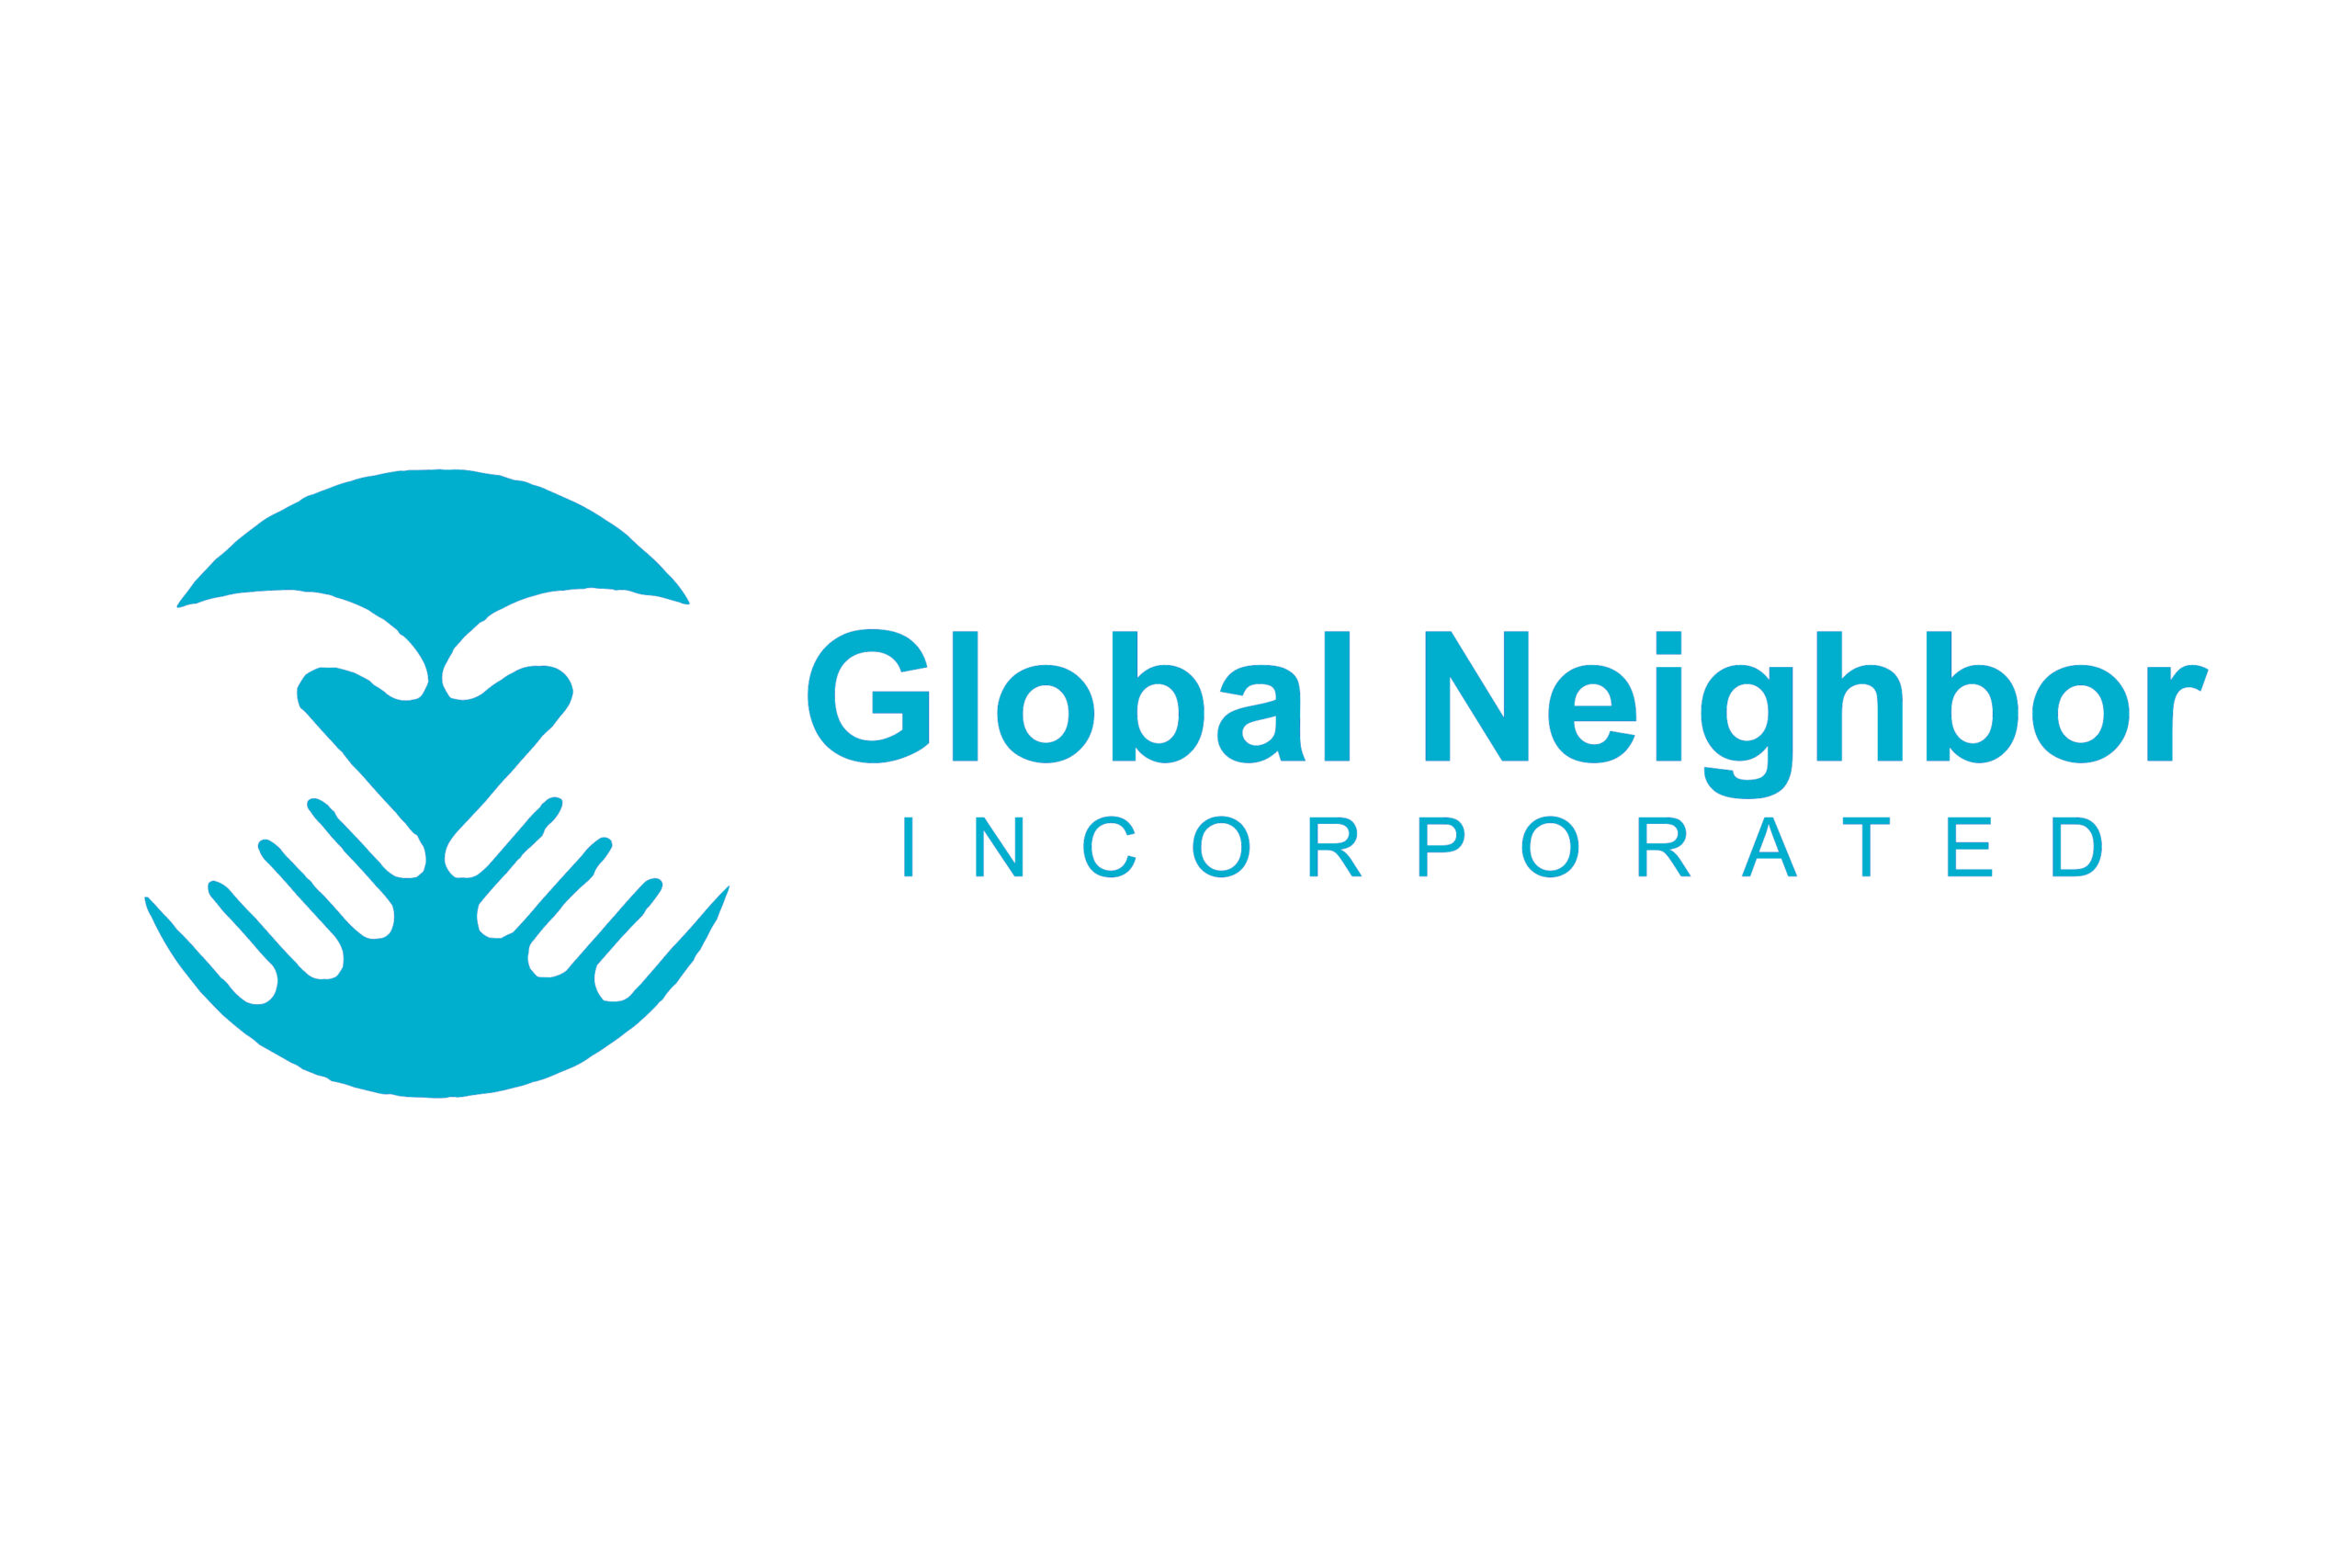 Global Neighbor, Inc.